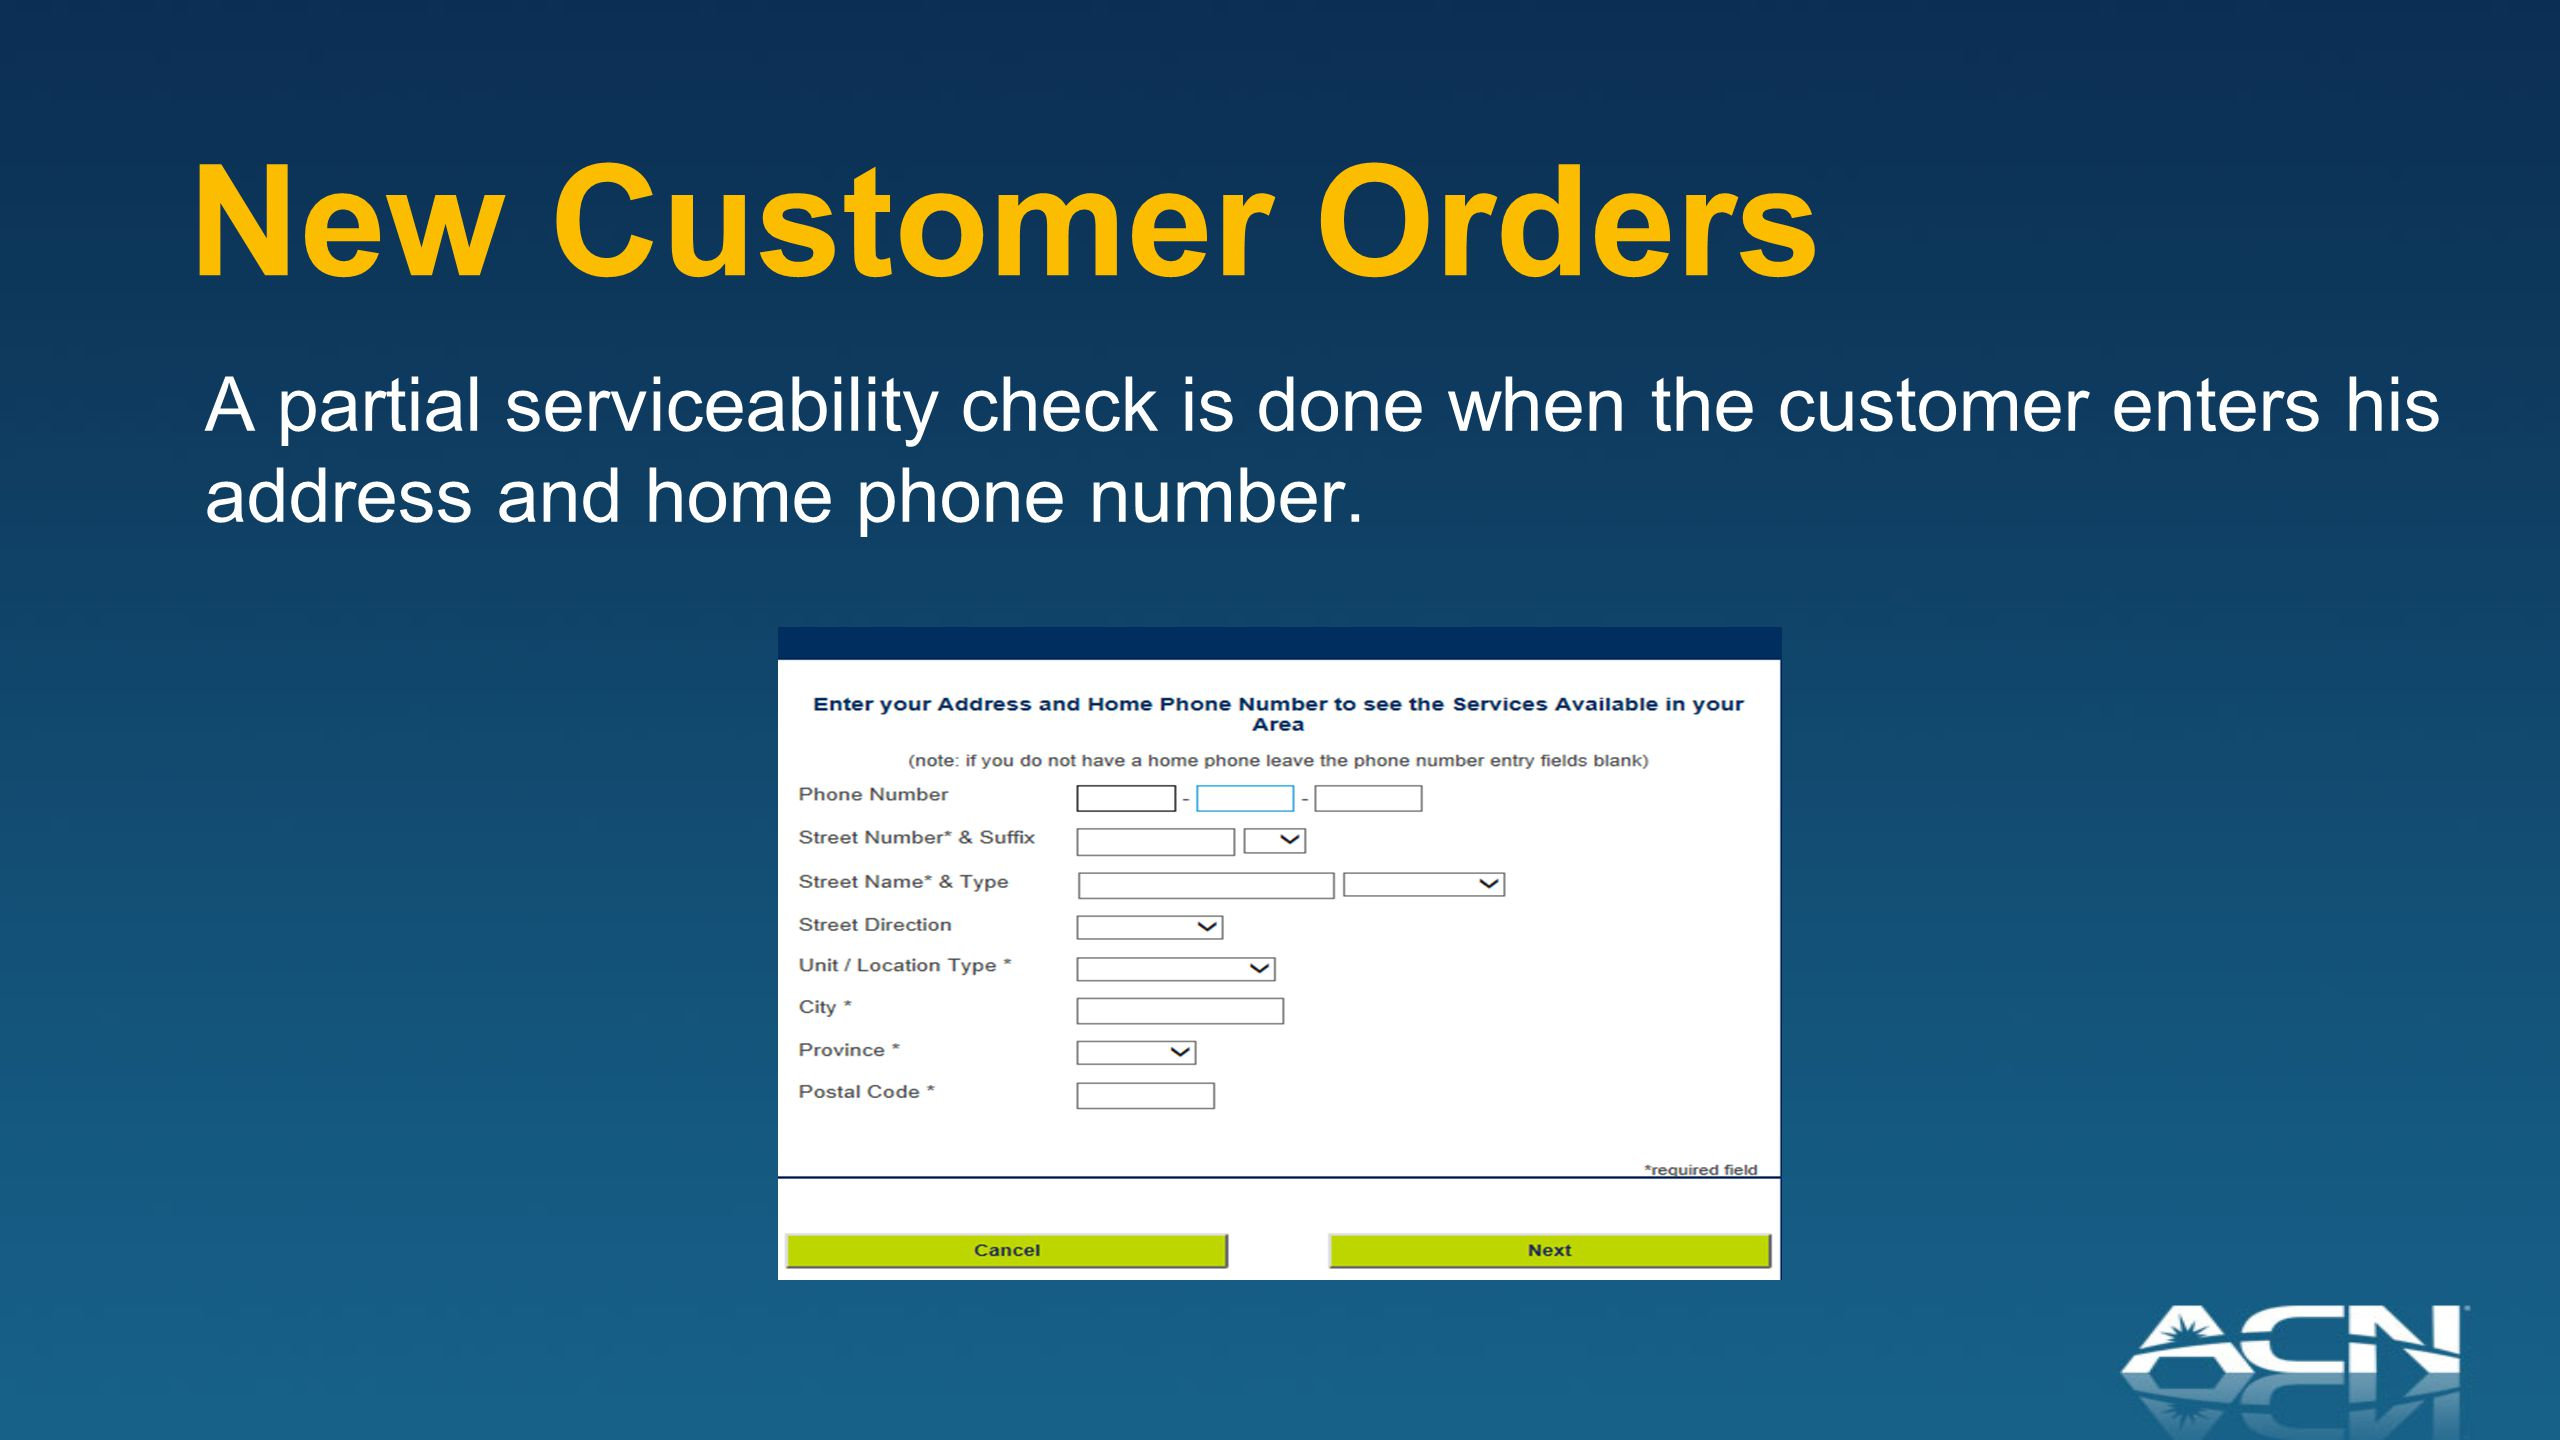 New Customer Orders A partial serviceability check is done when the customer enters his address and home phone number.